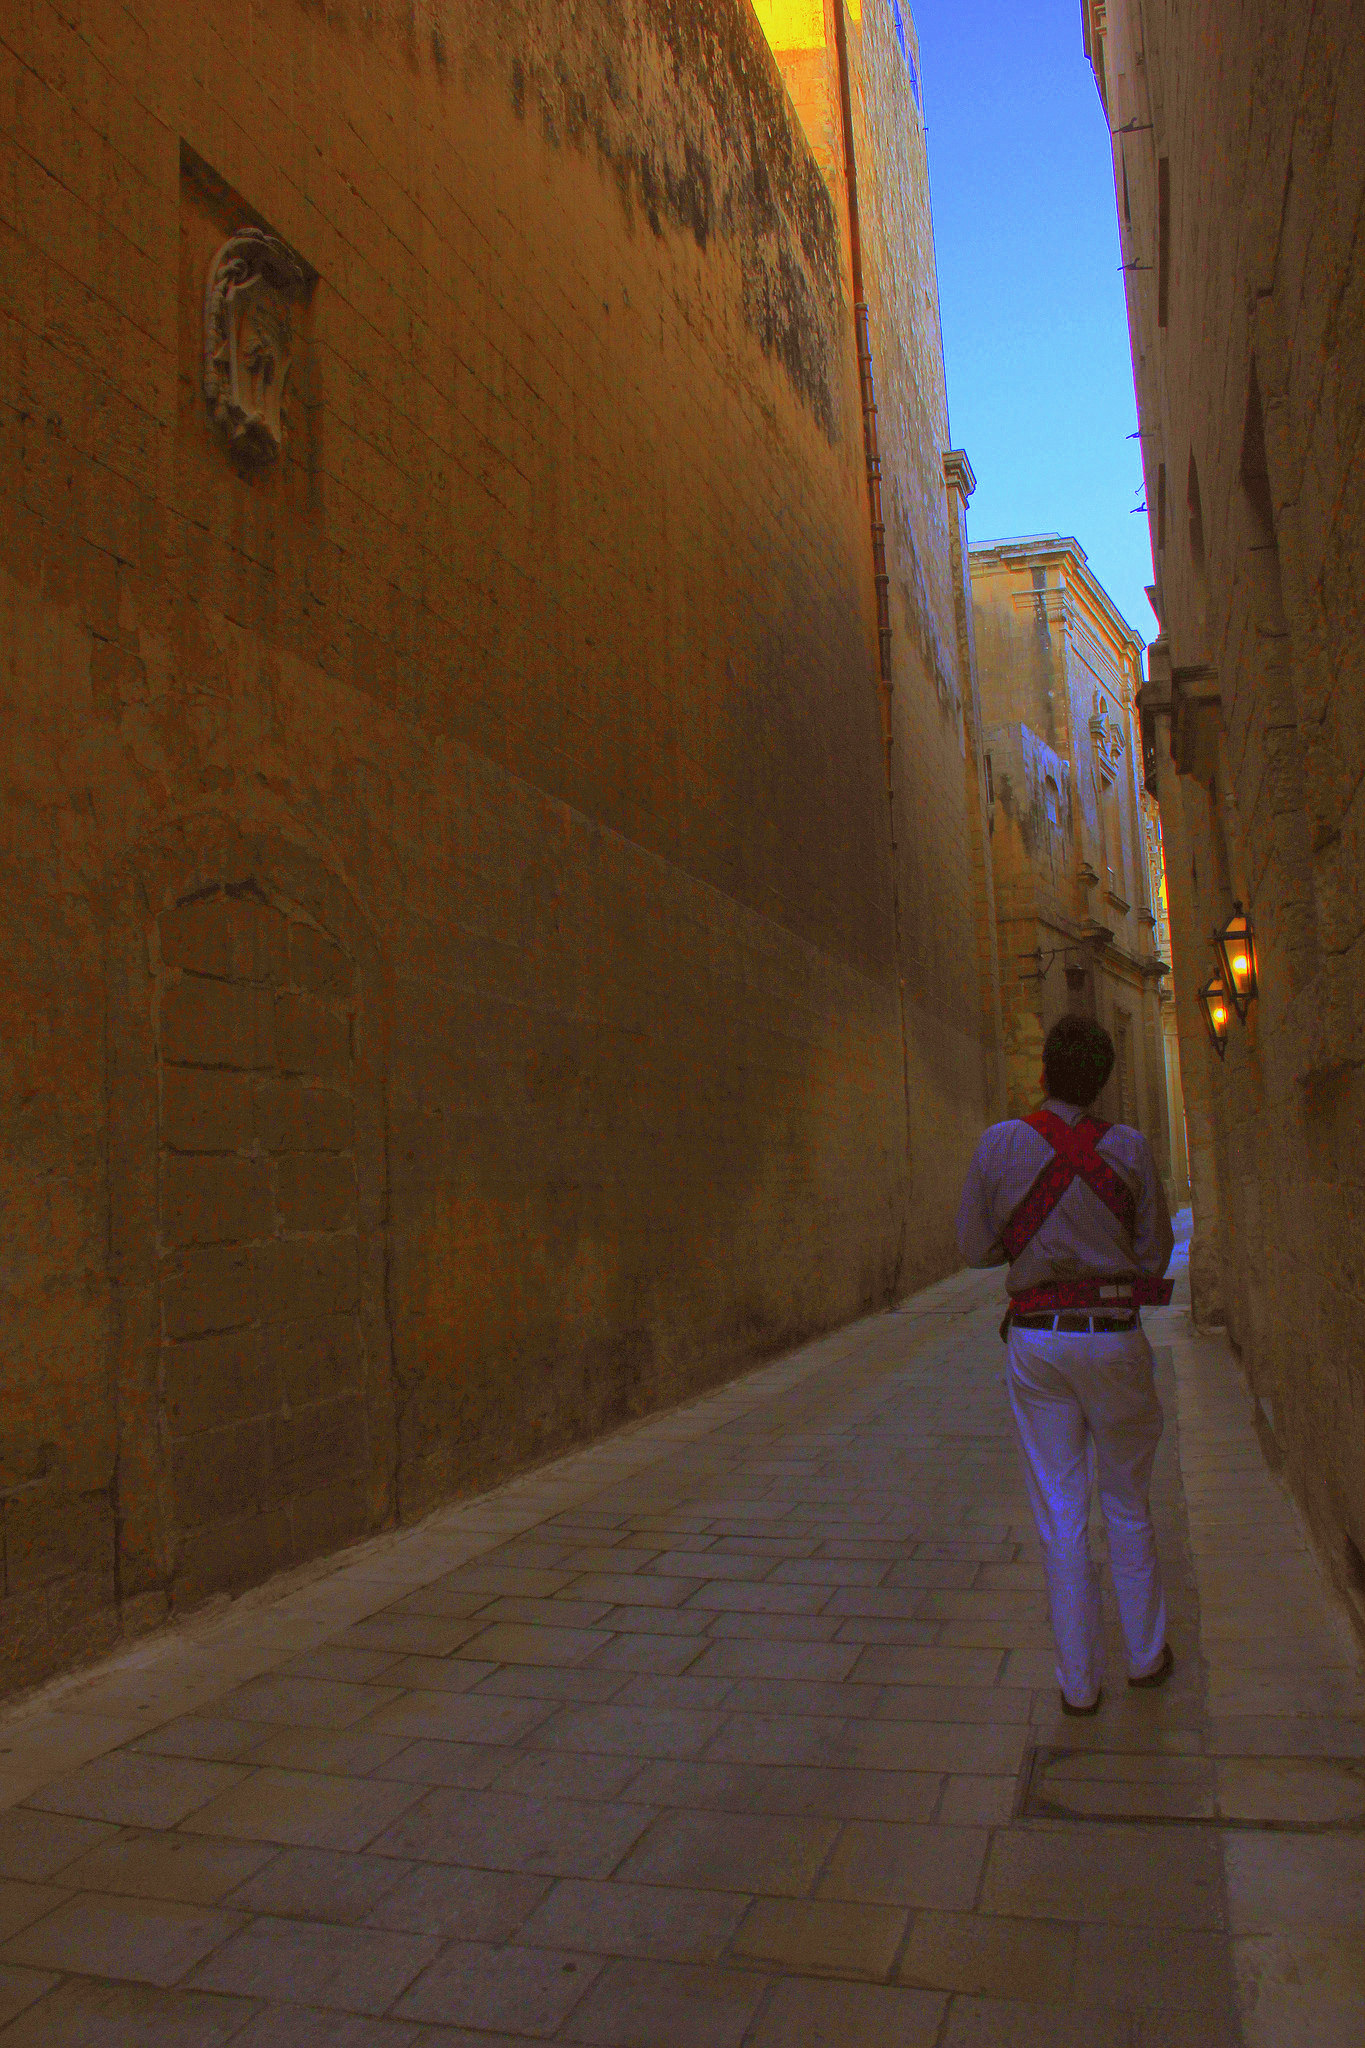 Mdina got its name from the Arabs